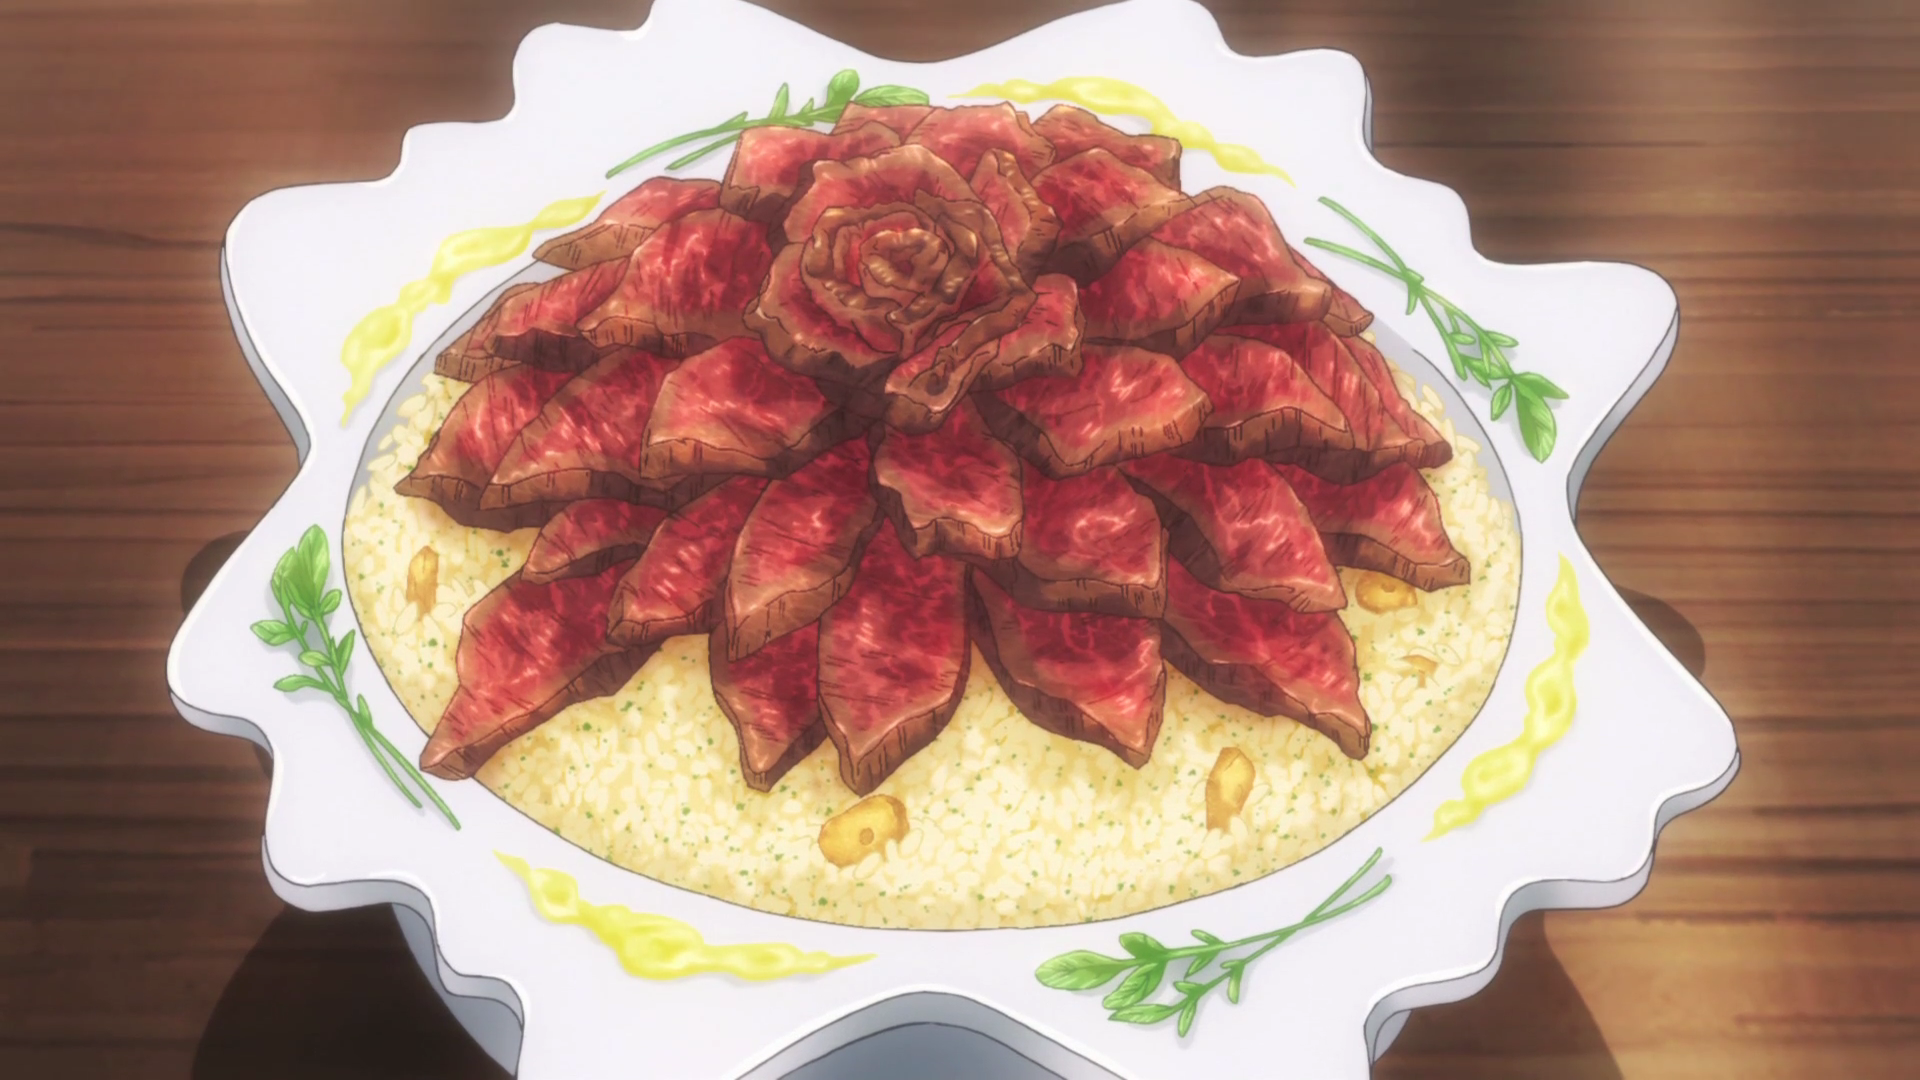 Food Wars English Dub